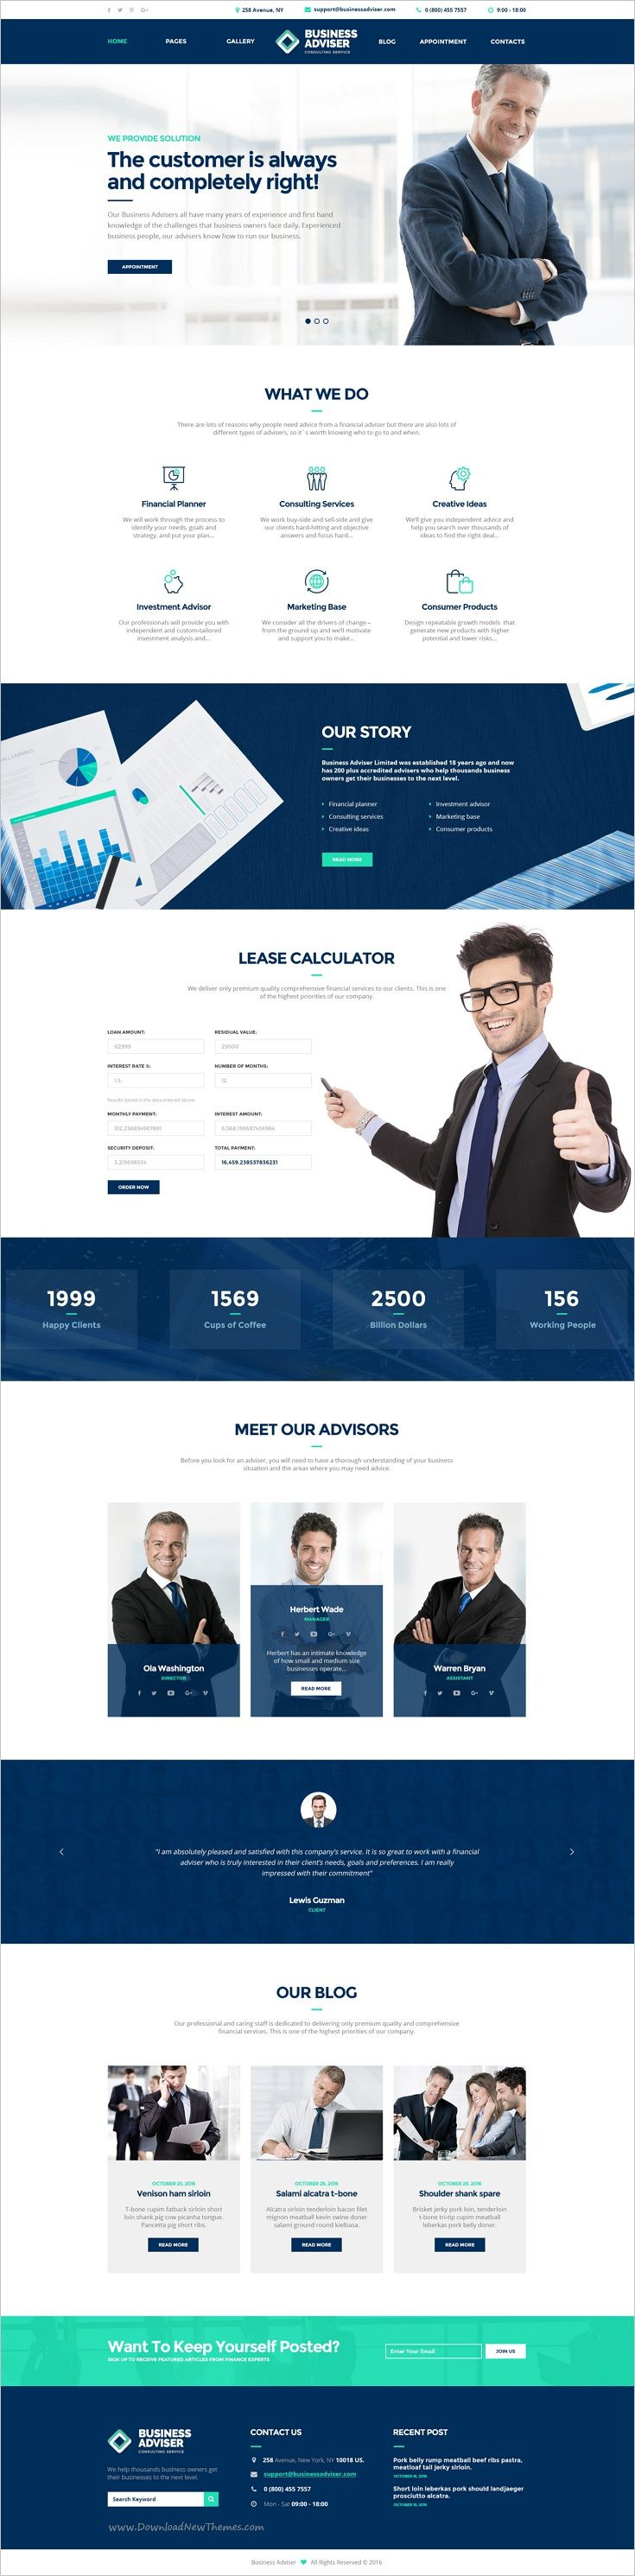 Business Adviser is a highly professional #PSD template for #webdev #business and #financial institutions or personal consultants website download now➩ https://themeforest.net/item/business-adviser-multipurpose-business-psd-template/18578695?ref=Datasata